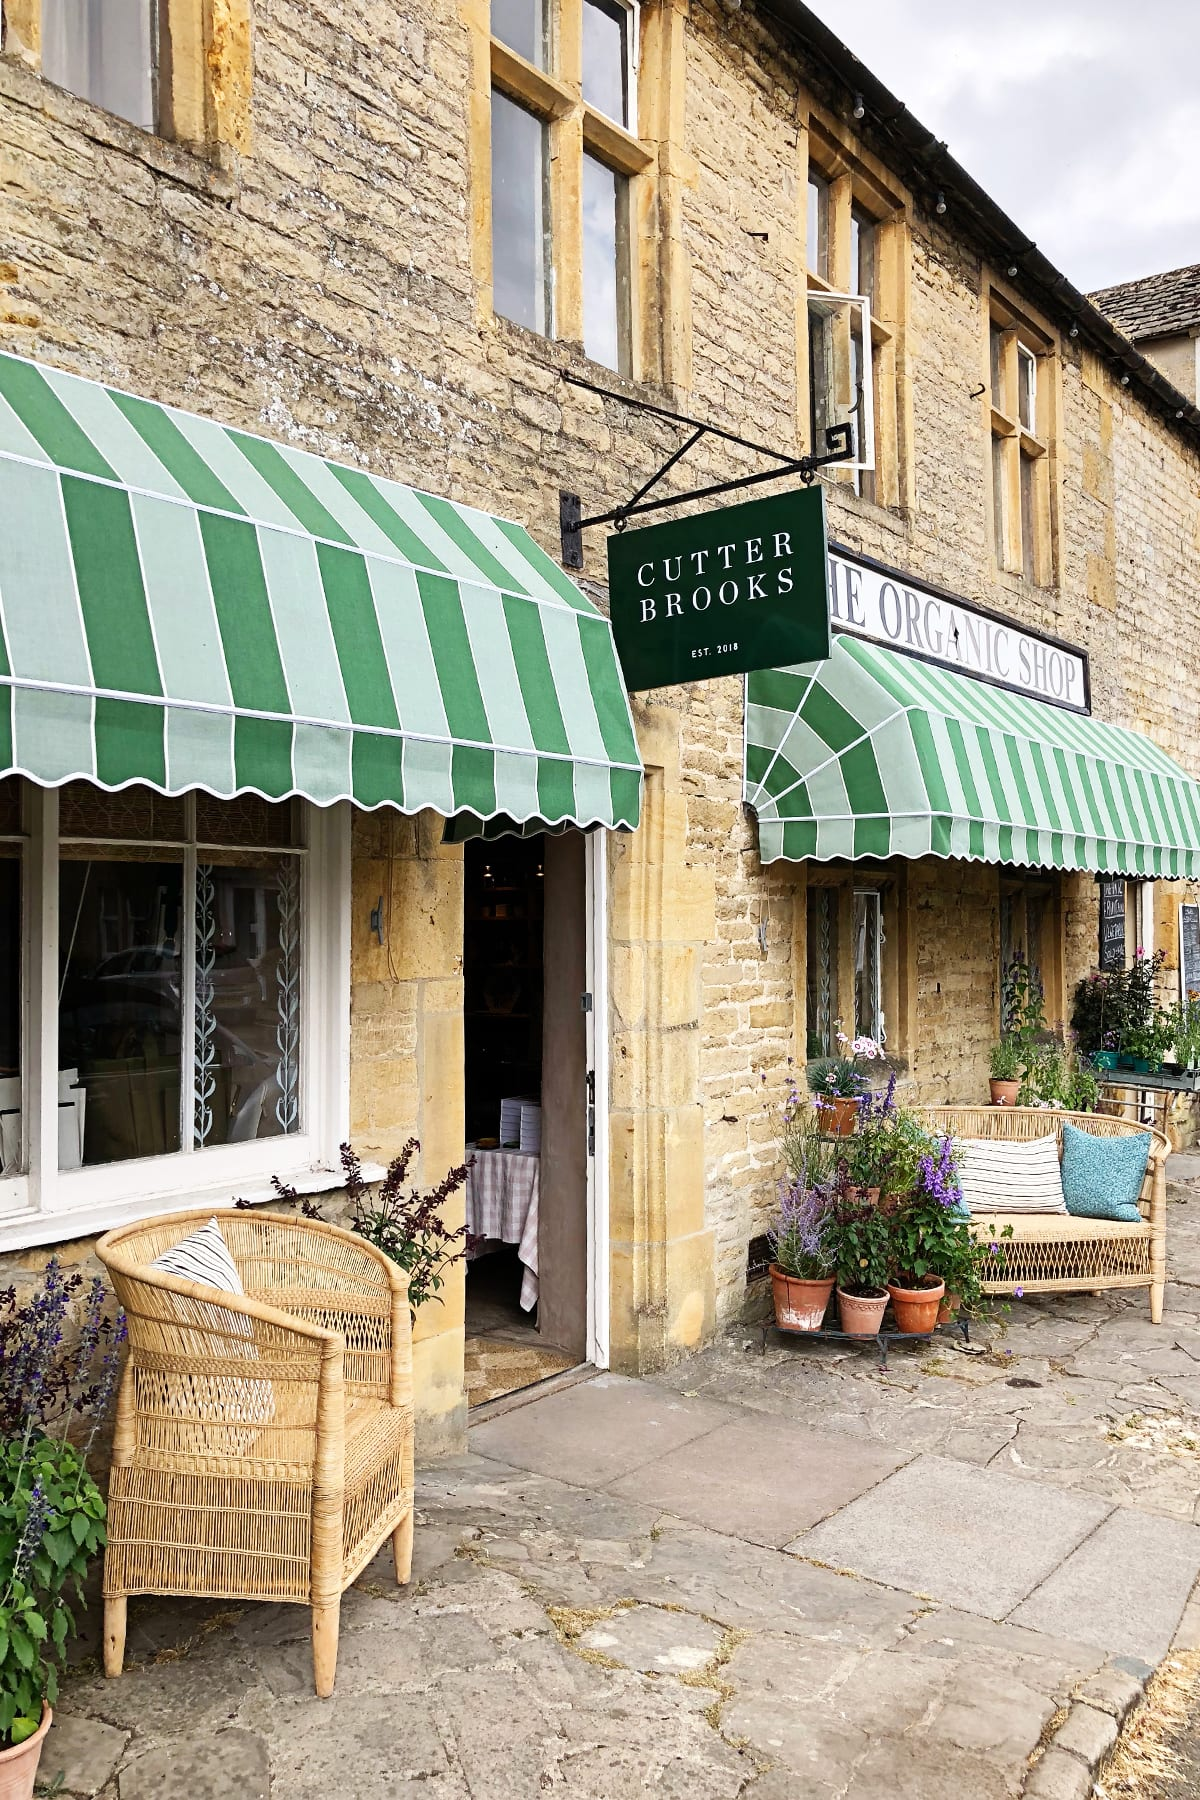 Stow on the wold shopping